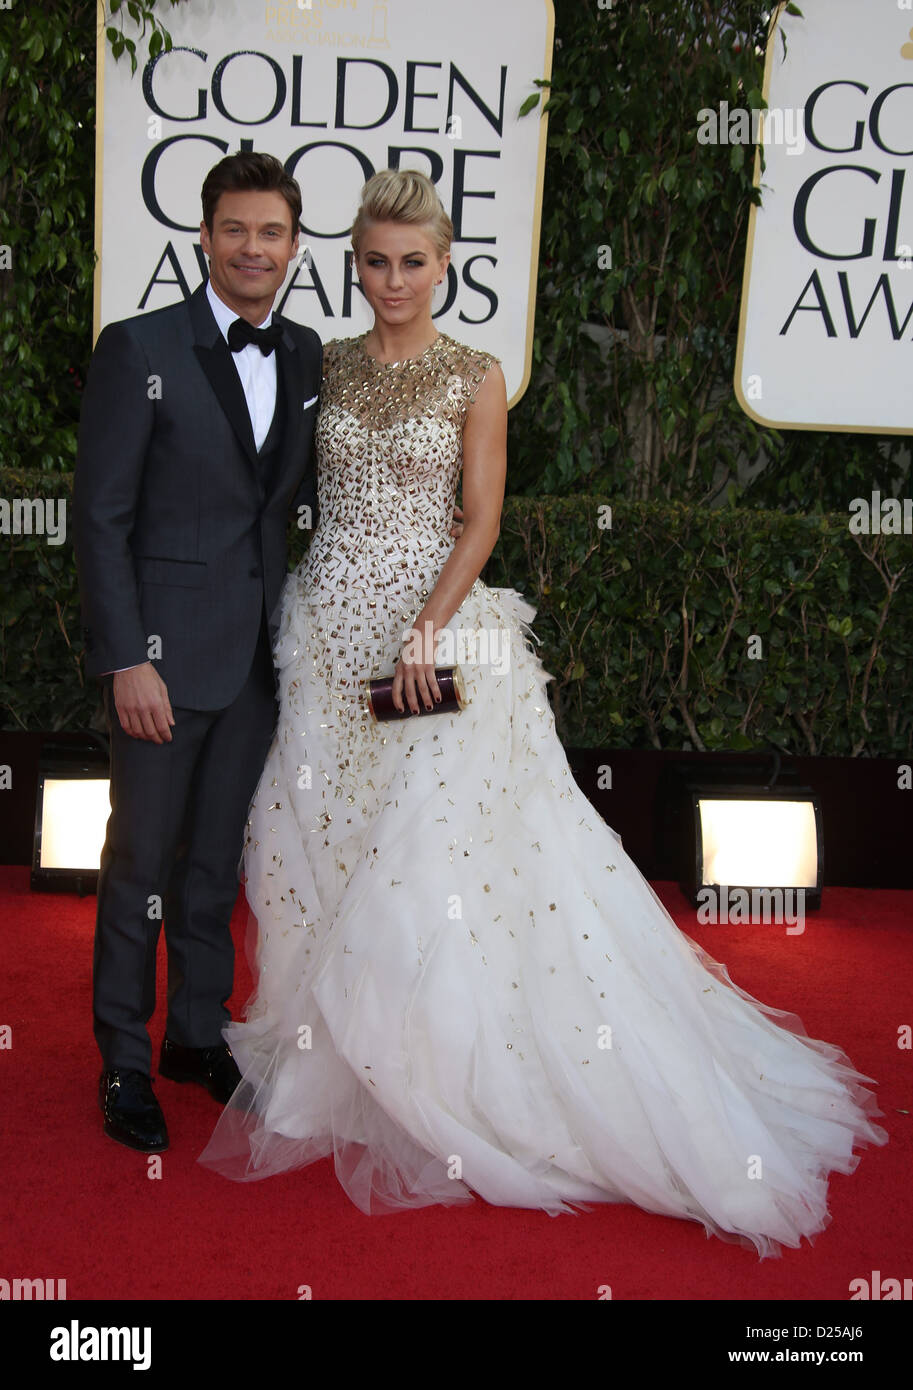 TV personality Ryan Seacrest (l) and actress Julianne Hough arrive at the 70th Annual Golden Globe Awards presented - Stock Image